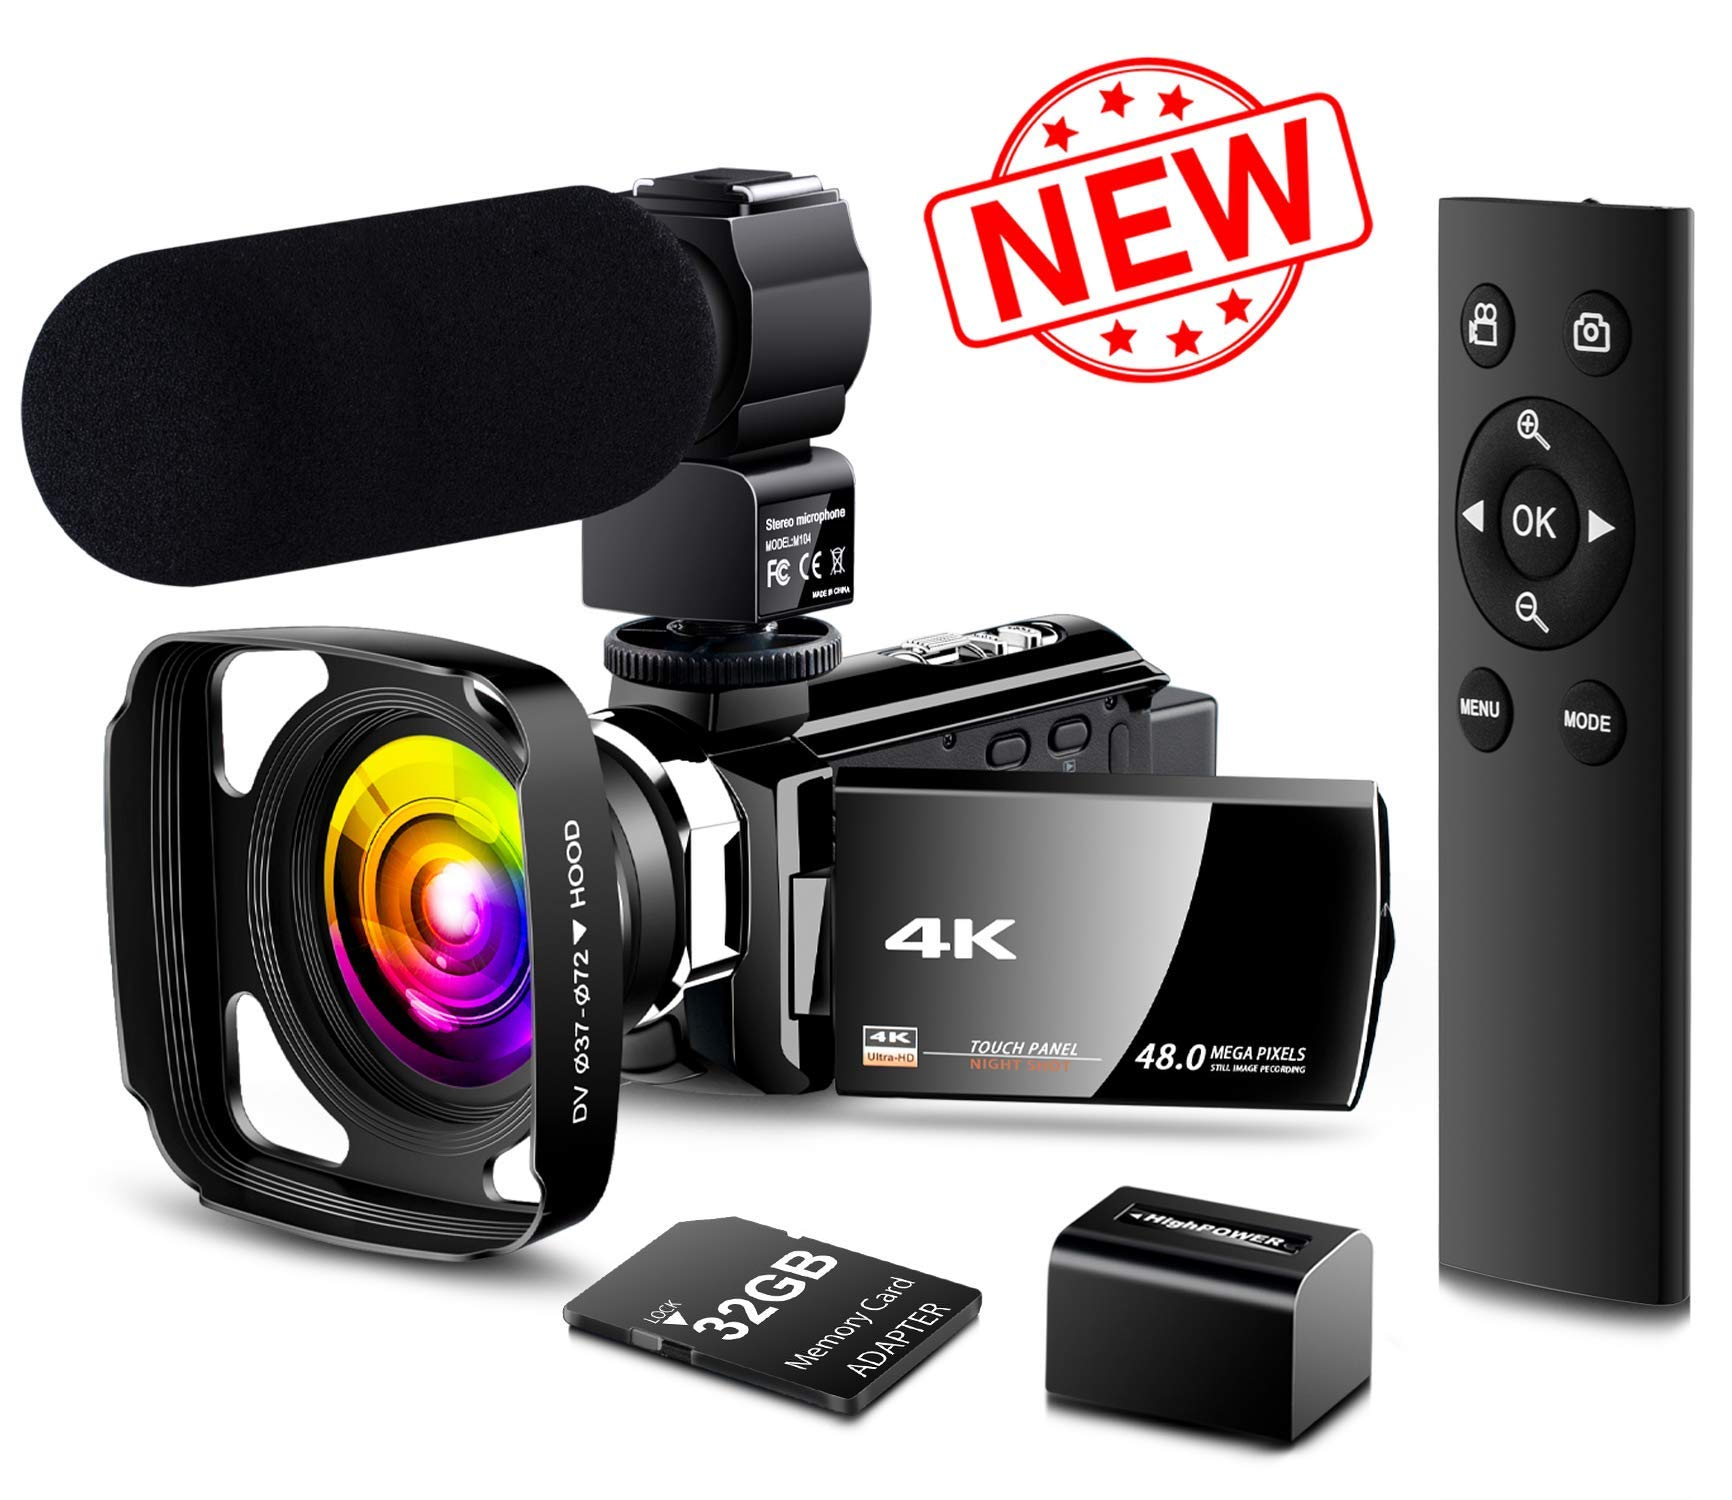 【New Upgrade】 4K Camcorder Vlogging Video Camera Ultra HD 60FPS Digital Recorder YouTube Camera 2.4G Remote Control IR Night Vision 3.0'' IPS Touch Screen with Microphone,Wide Angle Lens,Lens Hood by LVQUONE